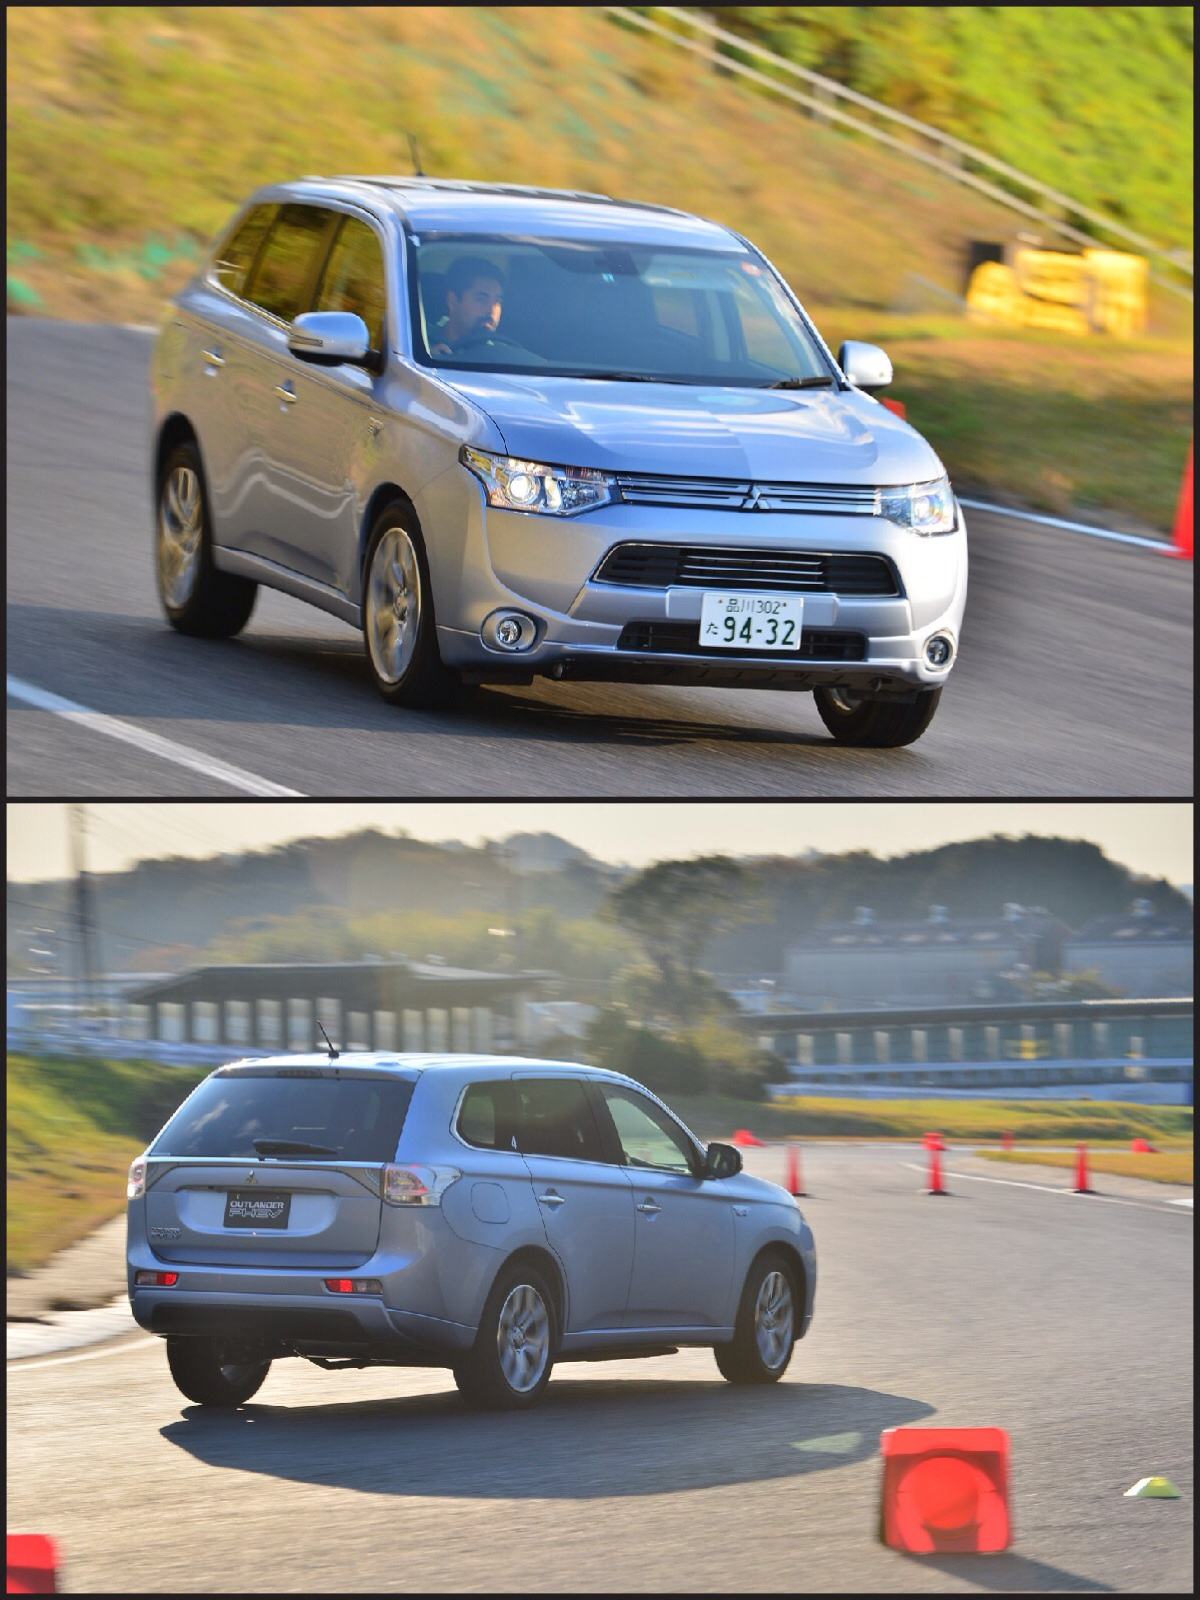 Phev. At oz